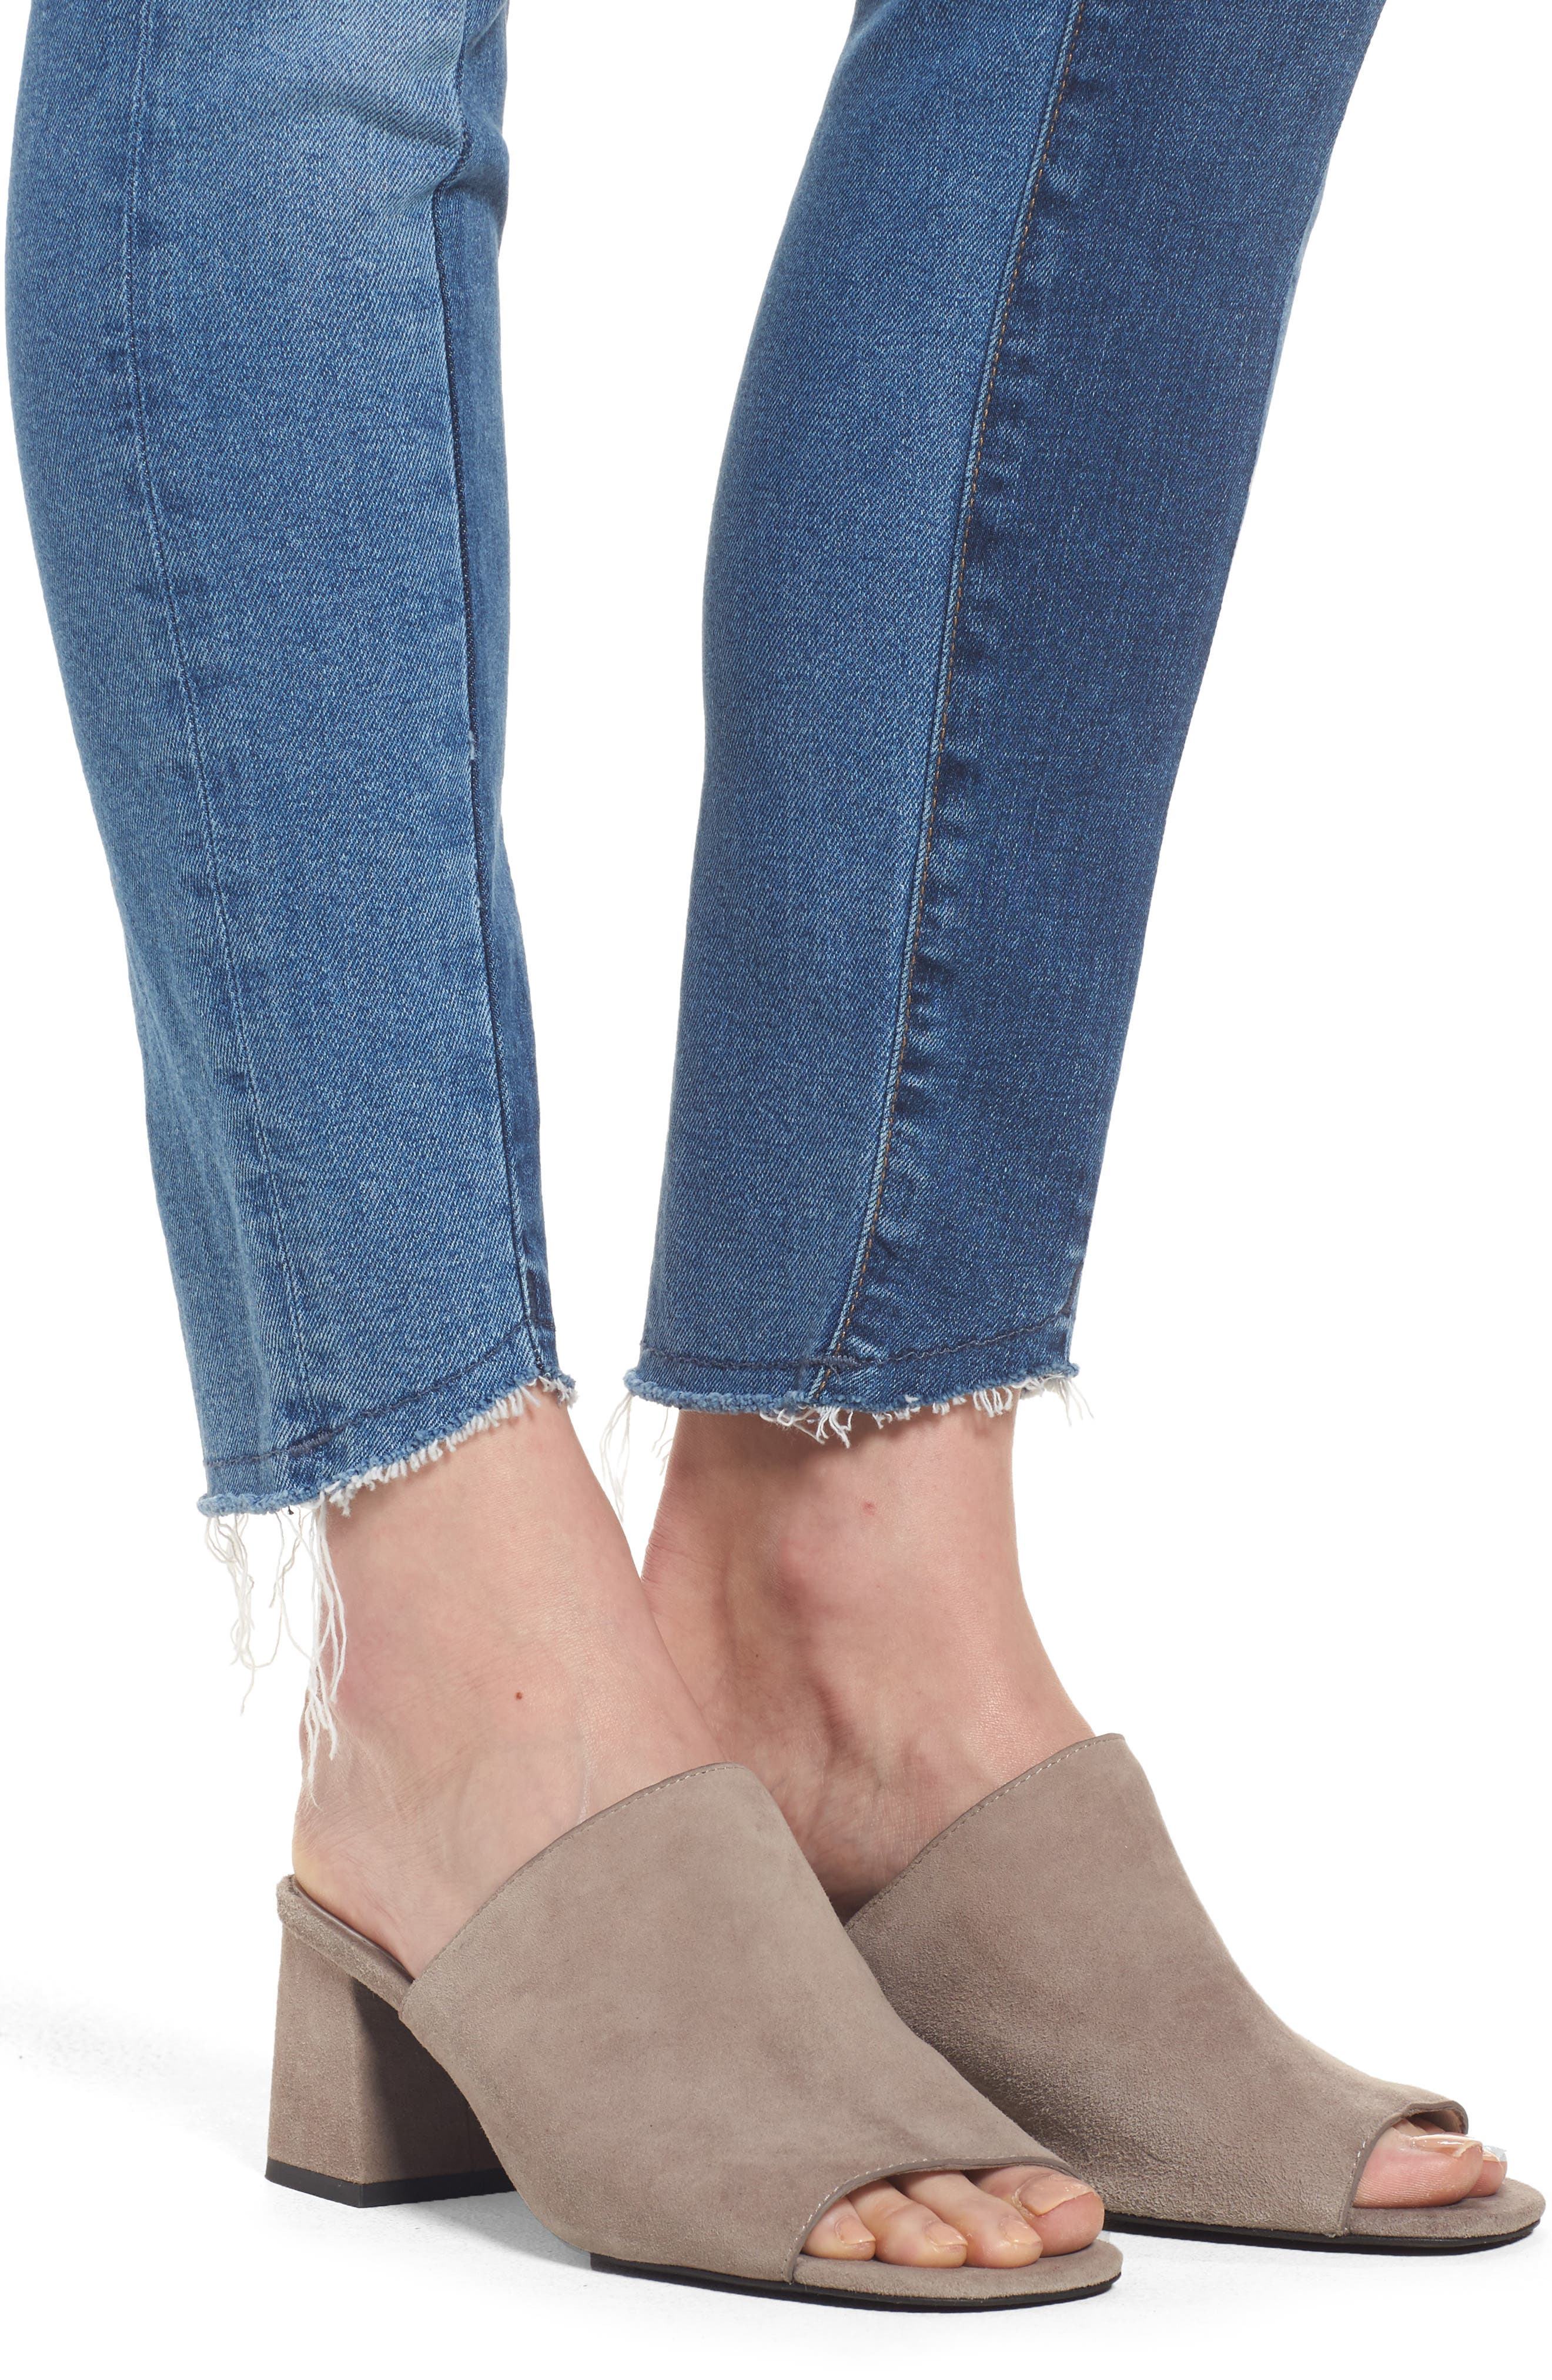 Tess Blocked Super Skinny Jeans,                             Alternate thumbnail 4, color,                             Mid Shaded Blocking Gold Icon